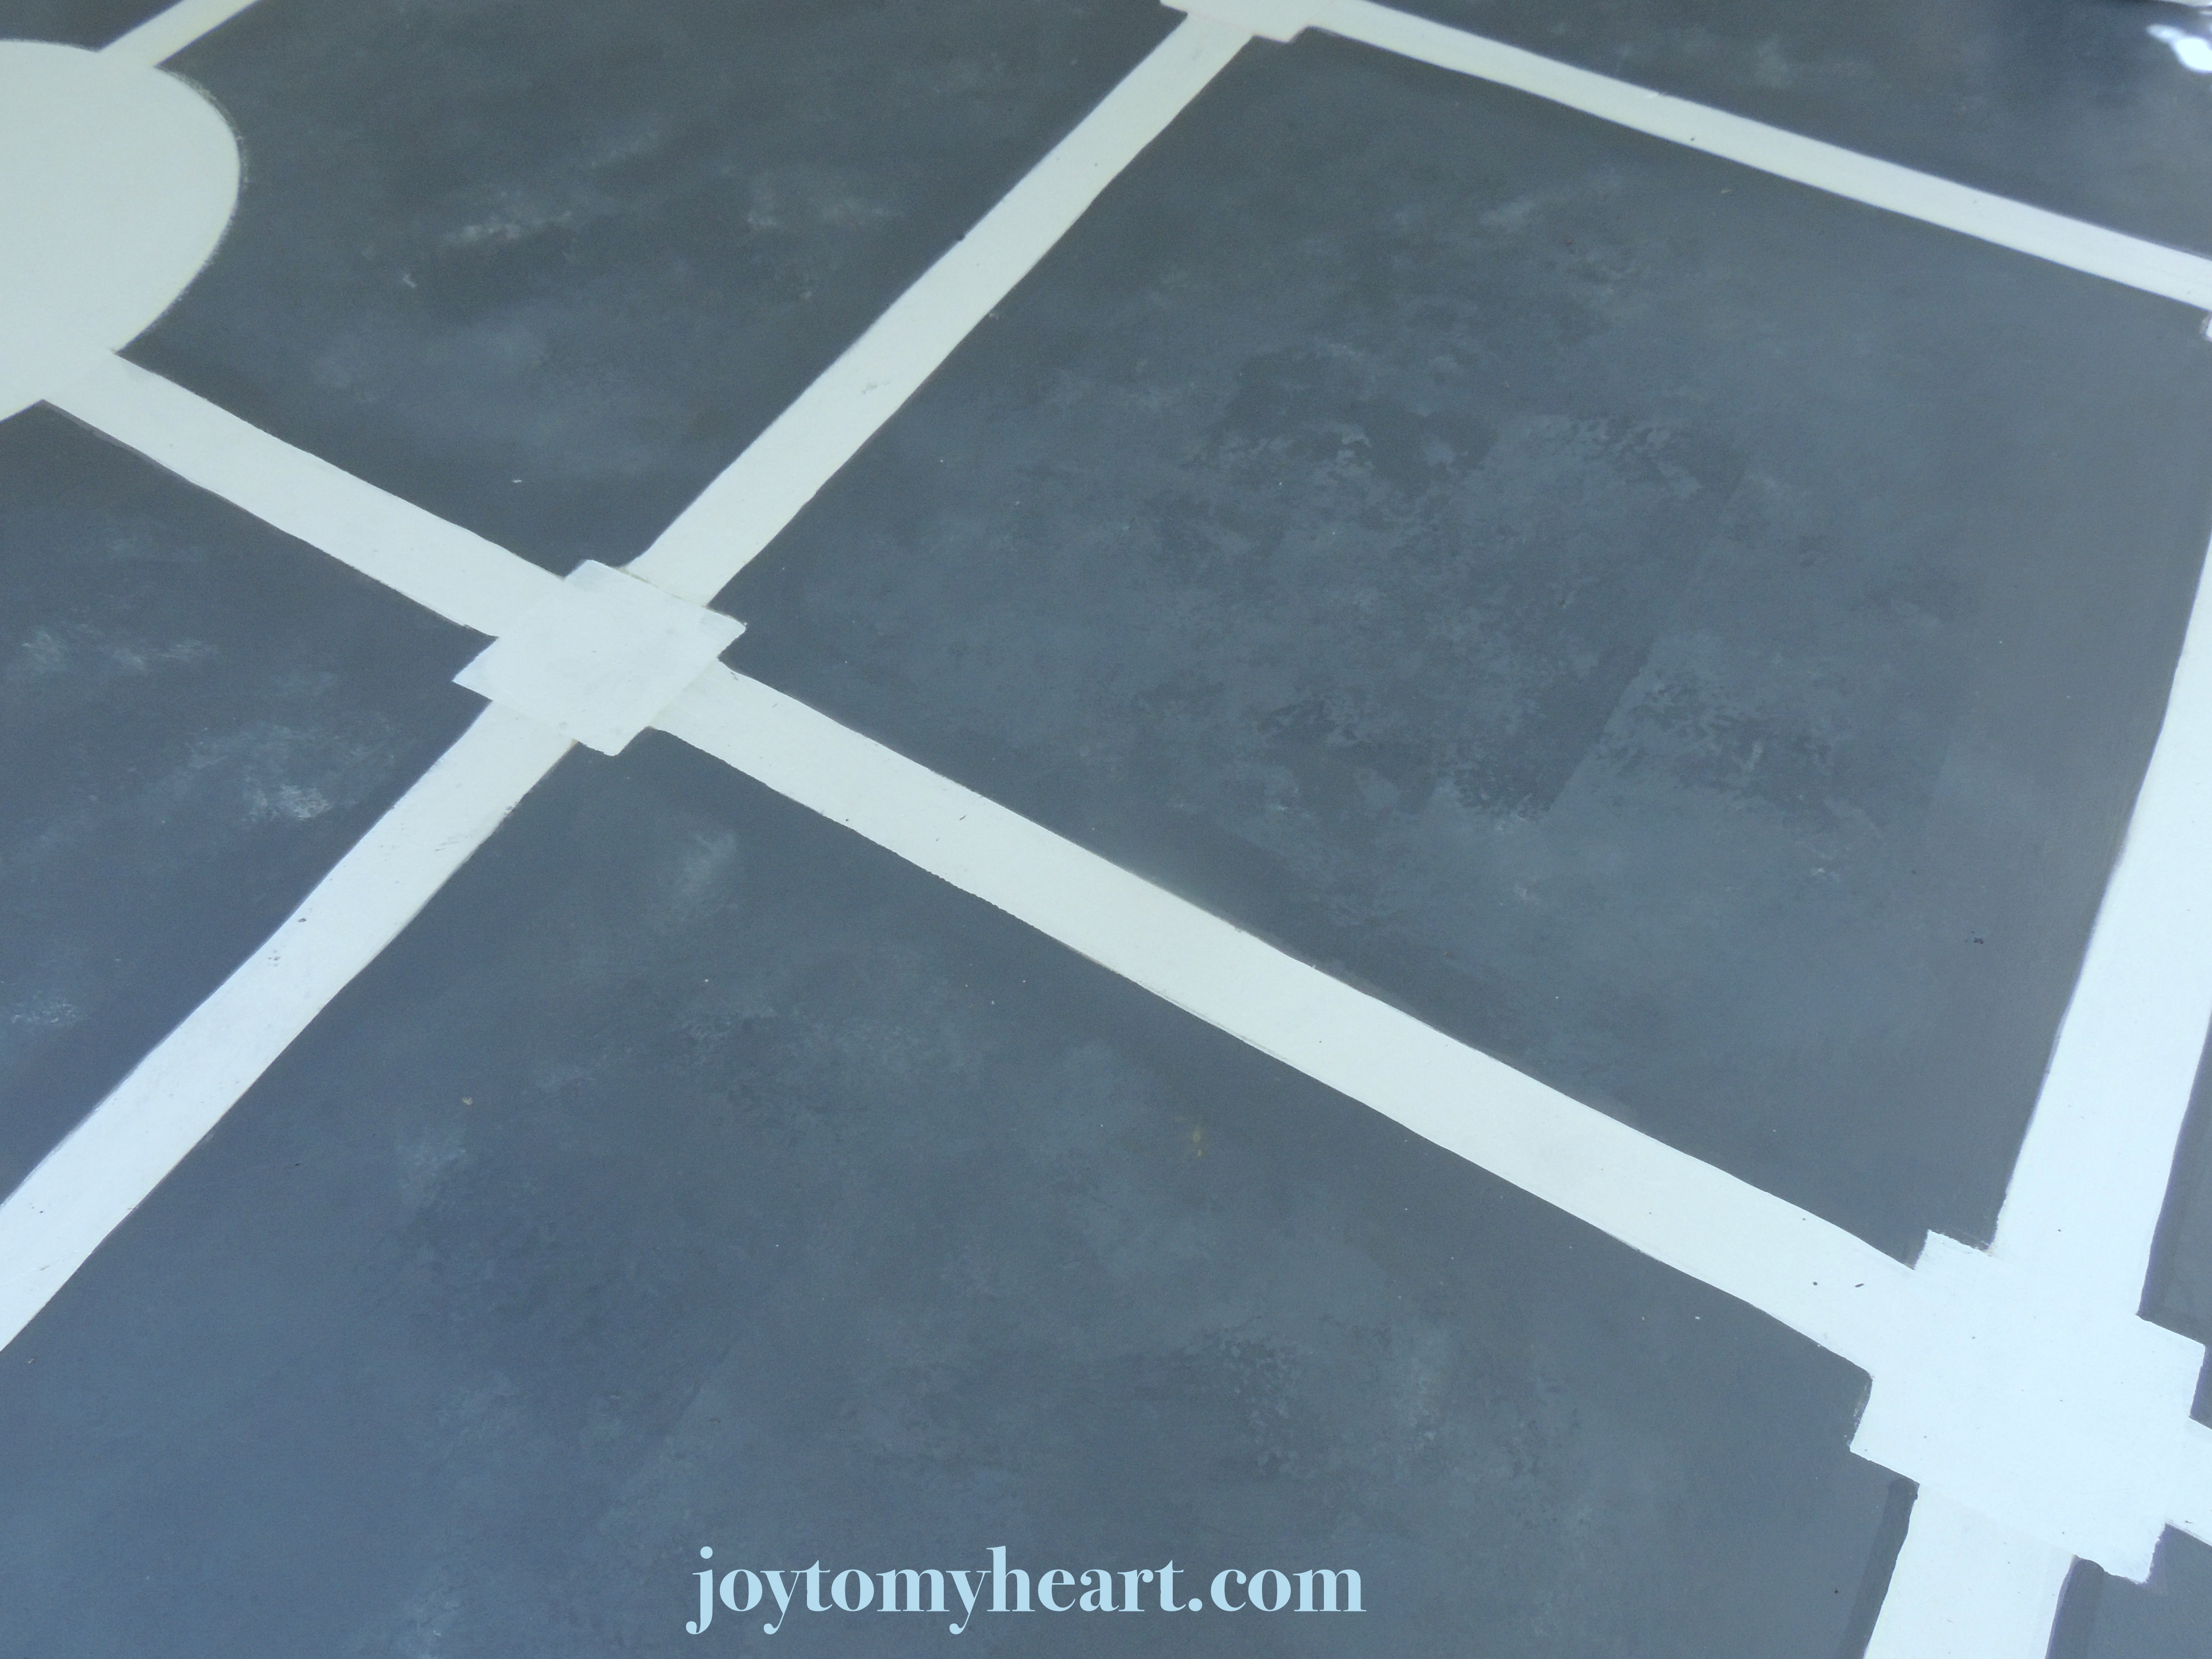 Diy paint a porch faux slate with stencil tiles joy to my heart after glazing a couple layers of paint and allowing to dry i used straight paint on the roller to leave pock marks very quickly roll lightly over a small dailygadgetfo Images